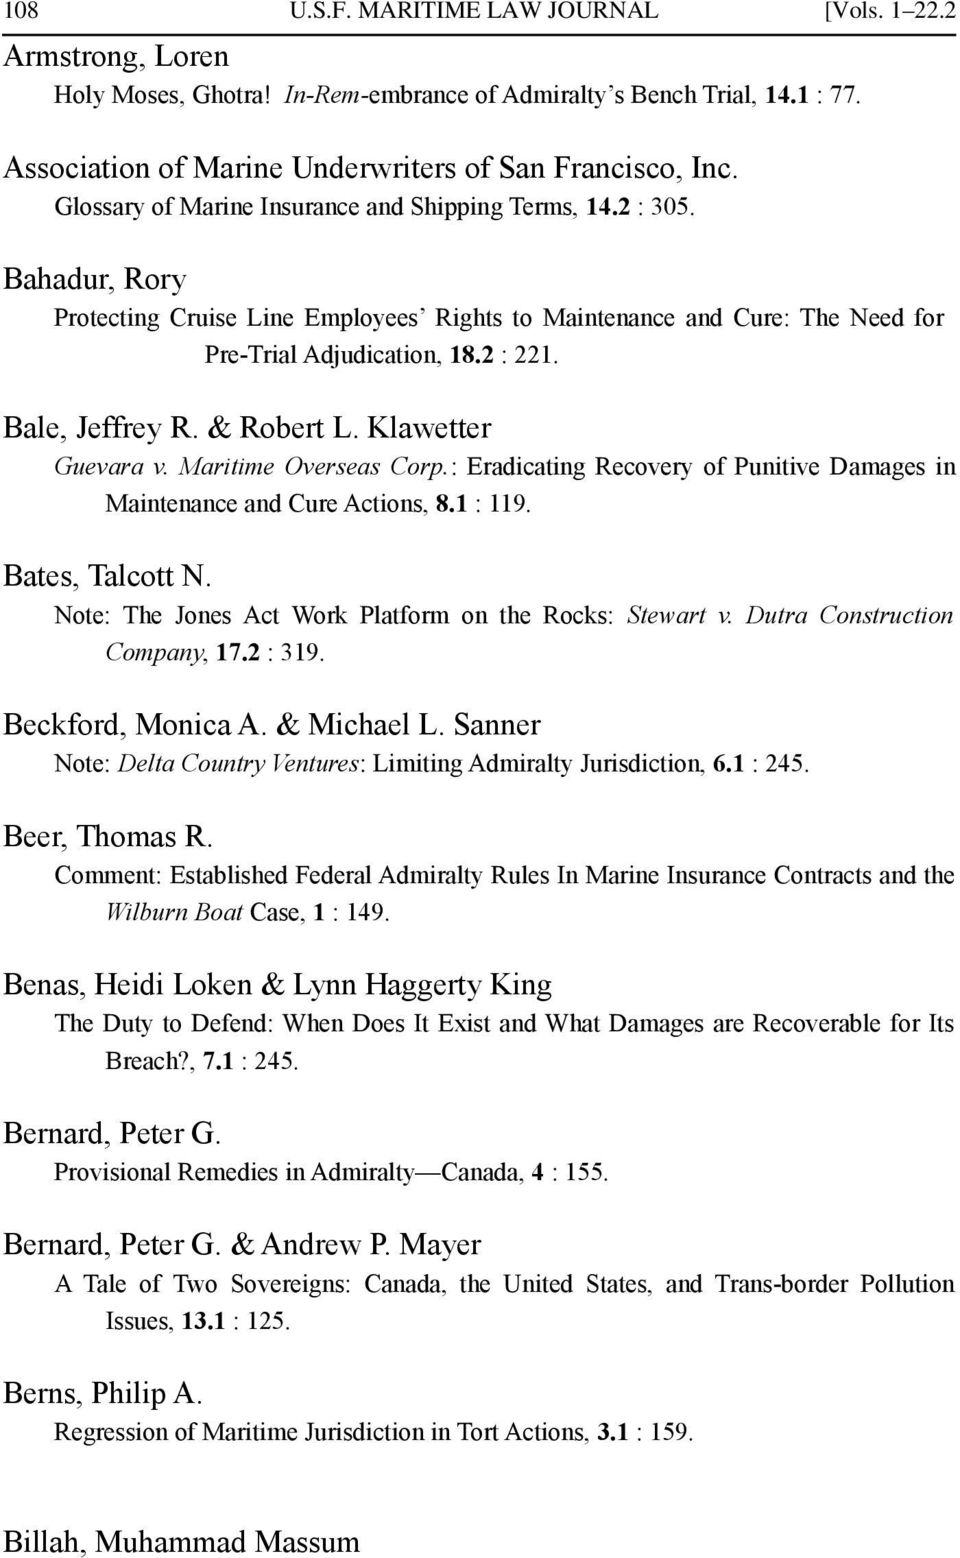 Bale, Jeffrey R. & Robert L. Klawetter Guevara v. Maritime Overseas Corp.: Eradicating Recovery of Punitive Damages in Maintenance and Cure Actions, 8.1 : 119. Bates, Talcott N.